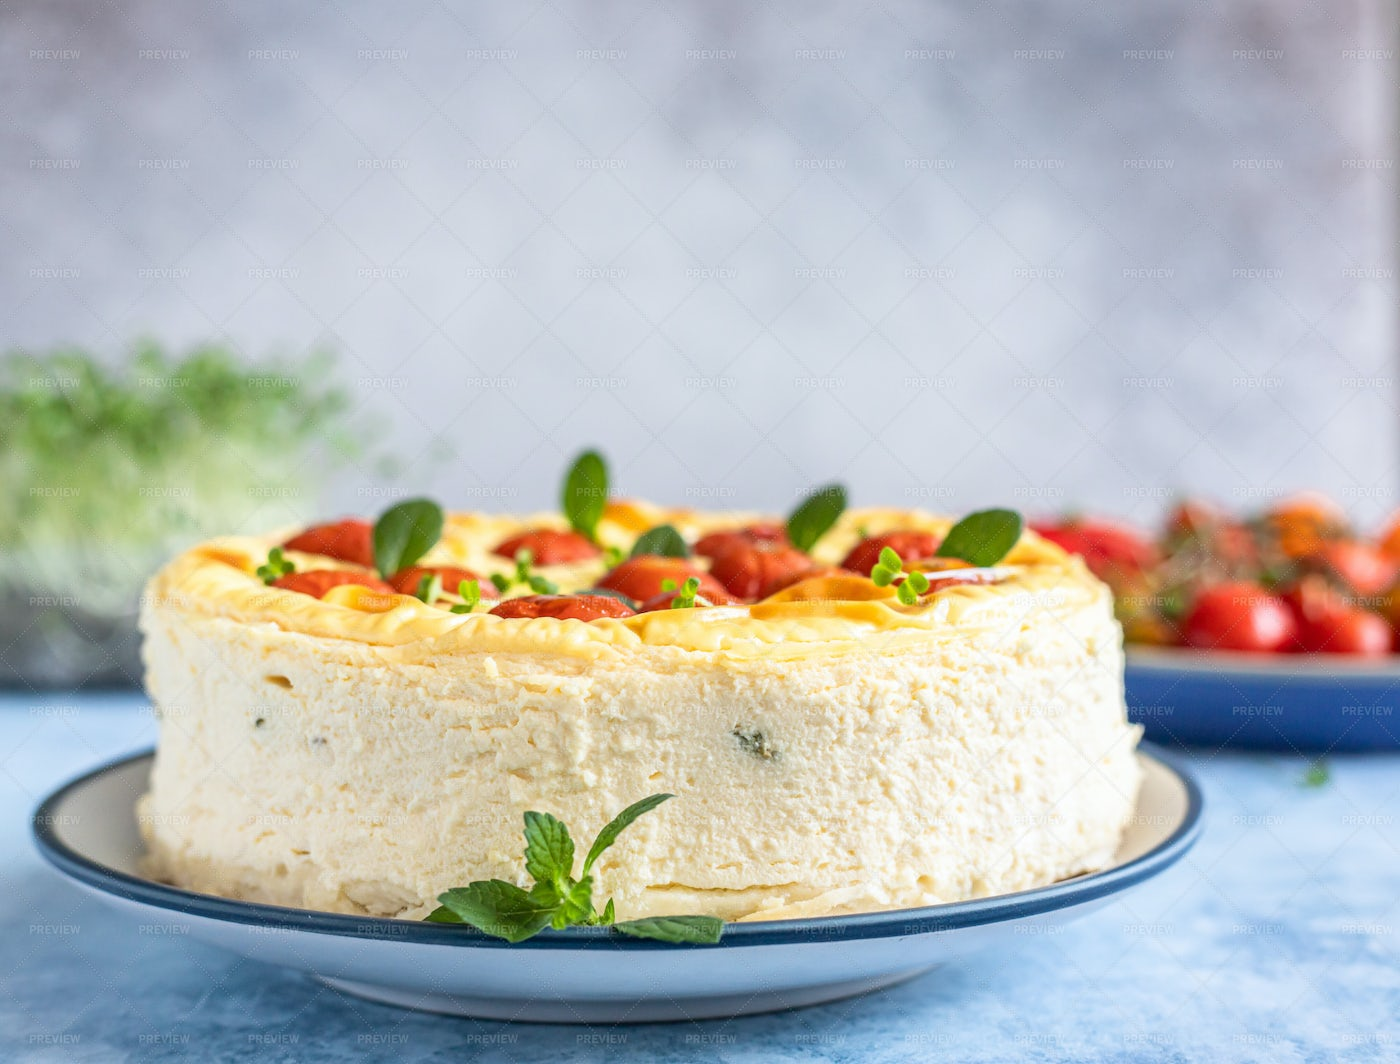 Cheesecake With Tomatoes: Stock Photos